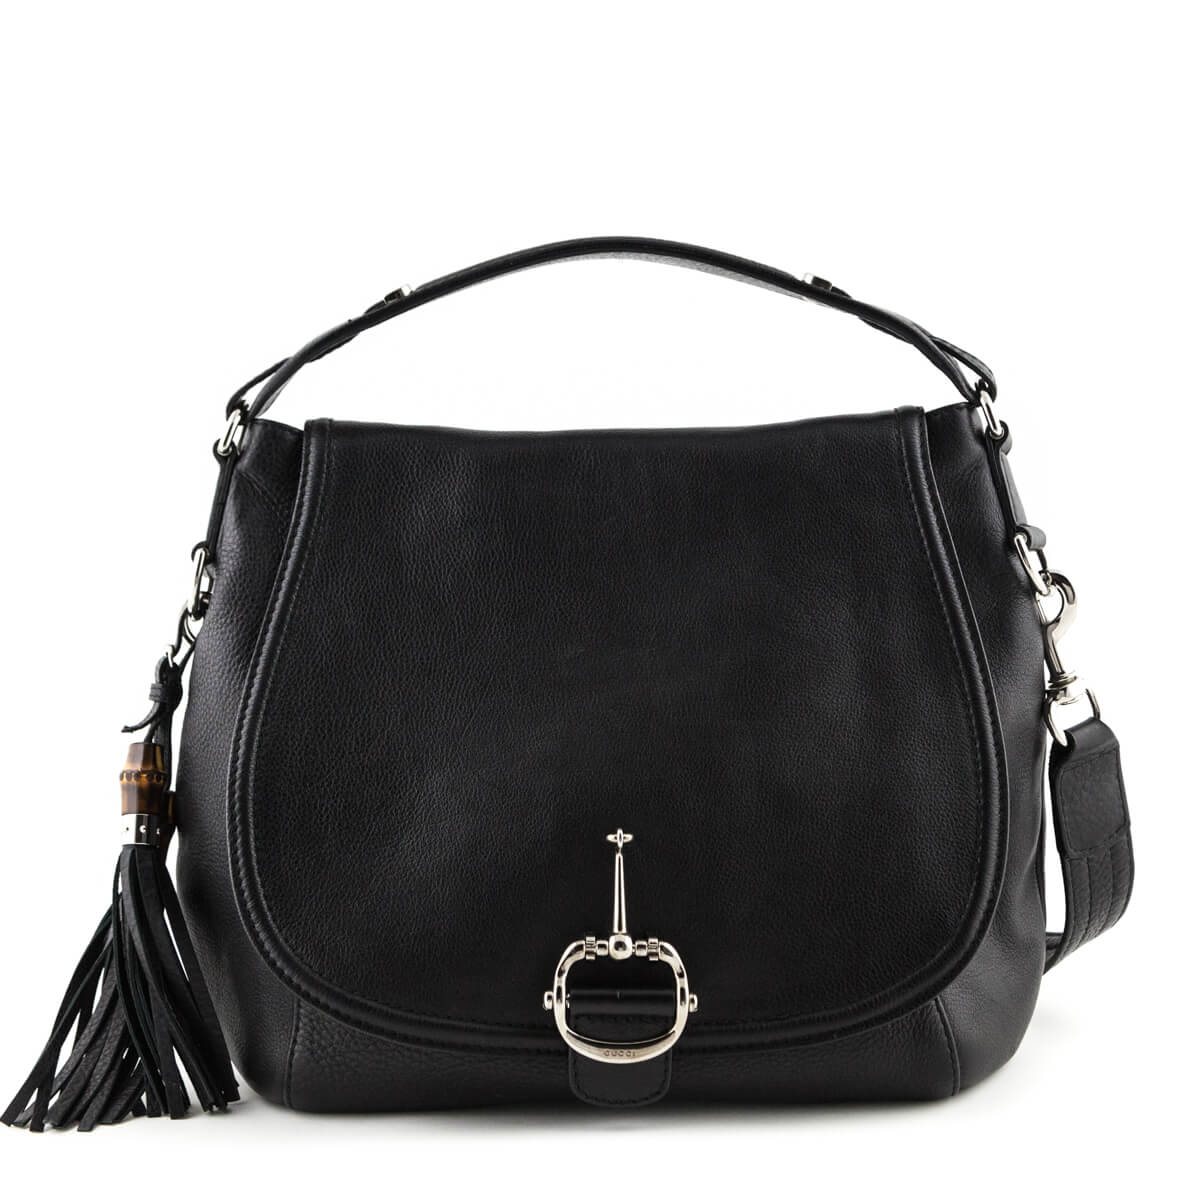 dc3f40911 Gucci Black Grained Leather Large Techno Horsebit Bag - LOVE that BAG -  Preowned Authentic Designer ...